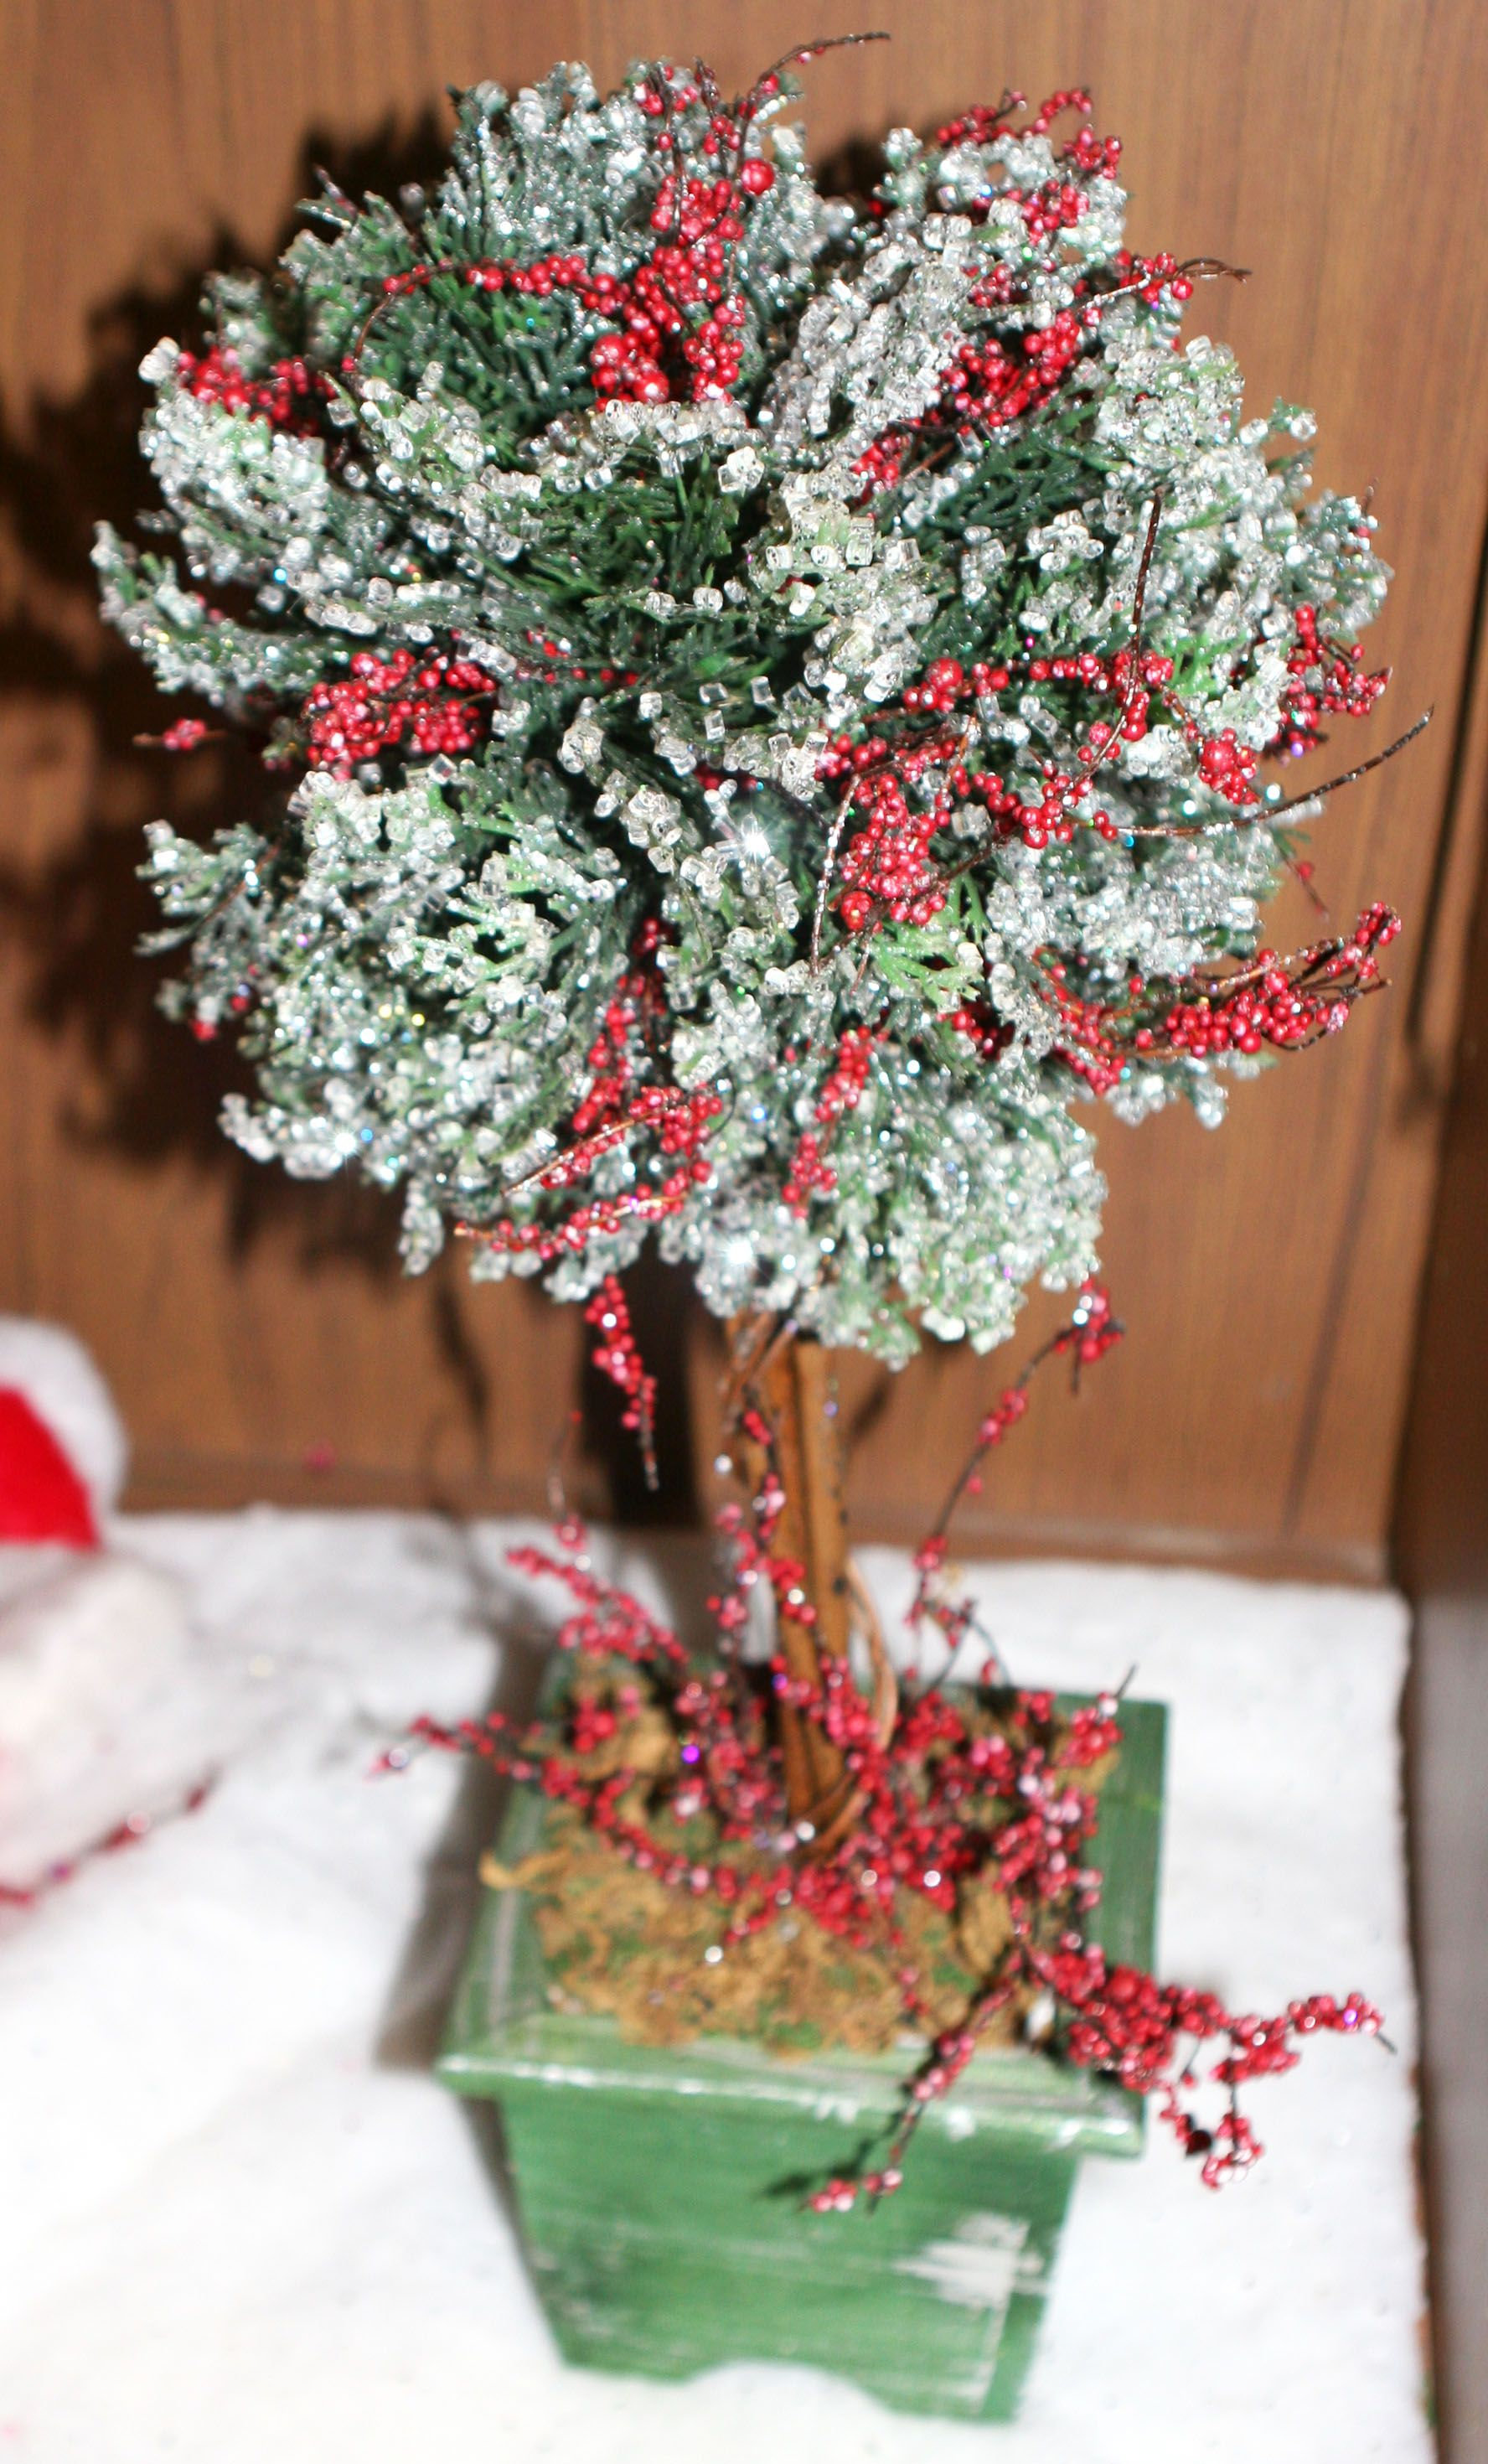 You can buy a gorgeous Holiday Decorative Tree at the ...